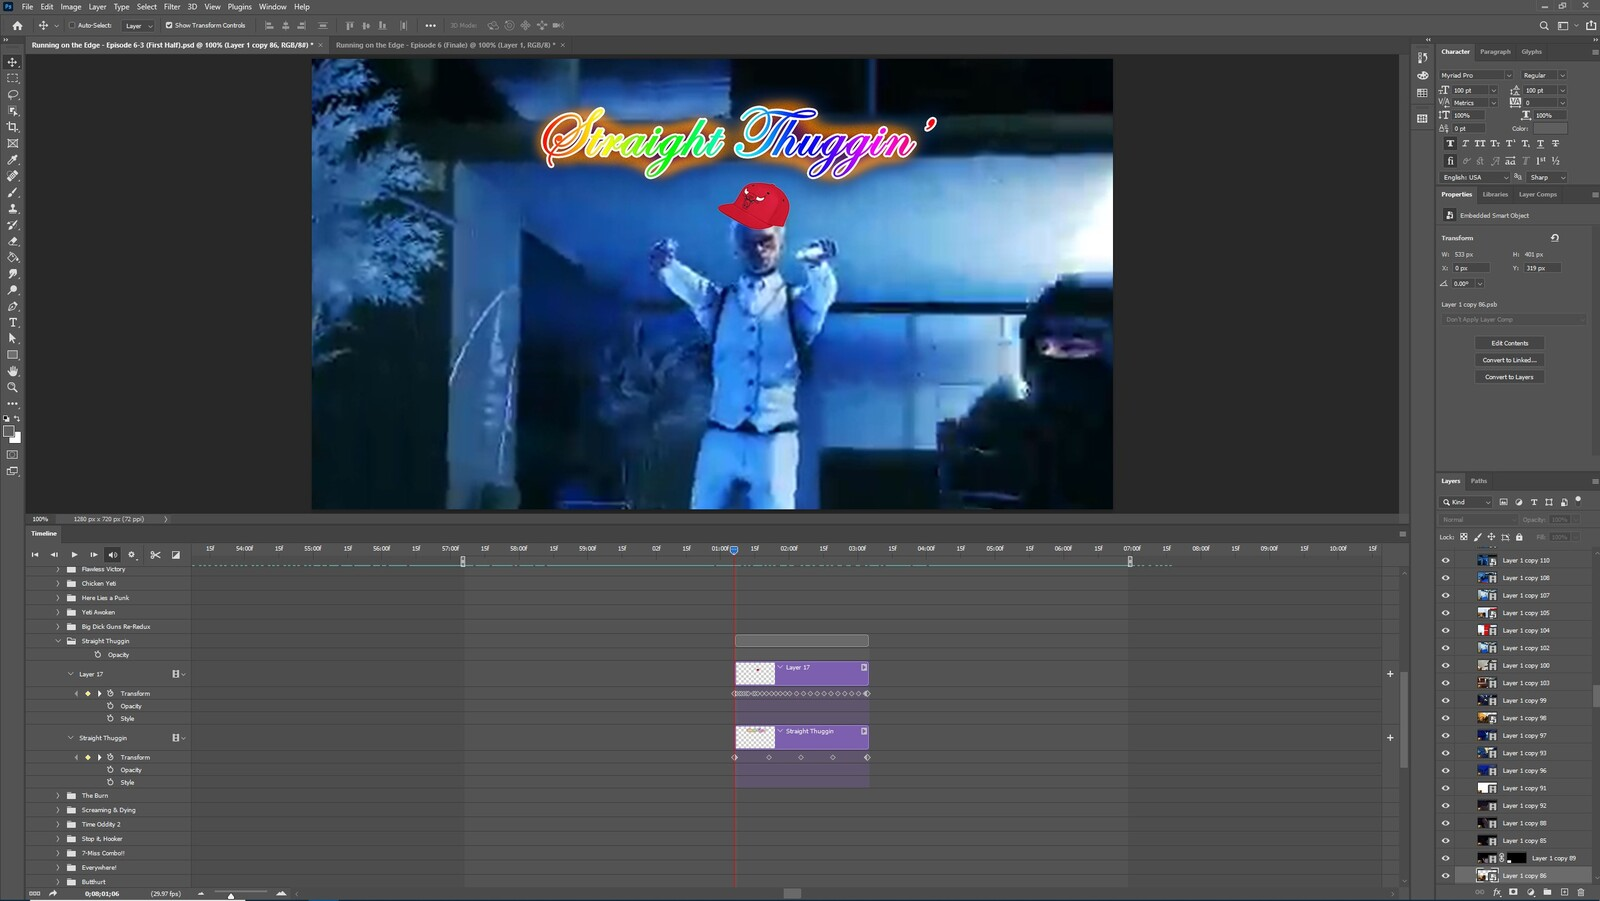 """The """"Straight Thuggin'"""" visual effect within Photoshop video editor"""